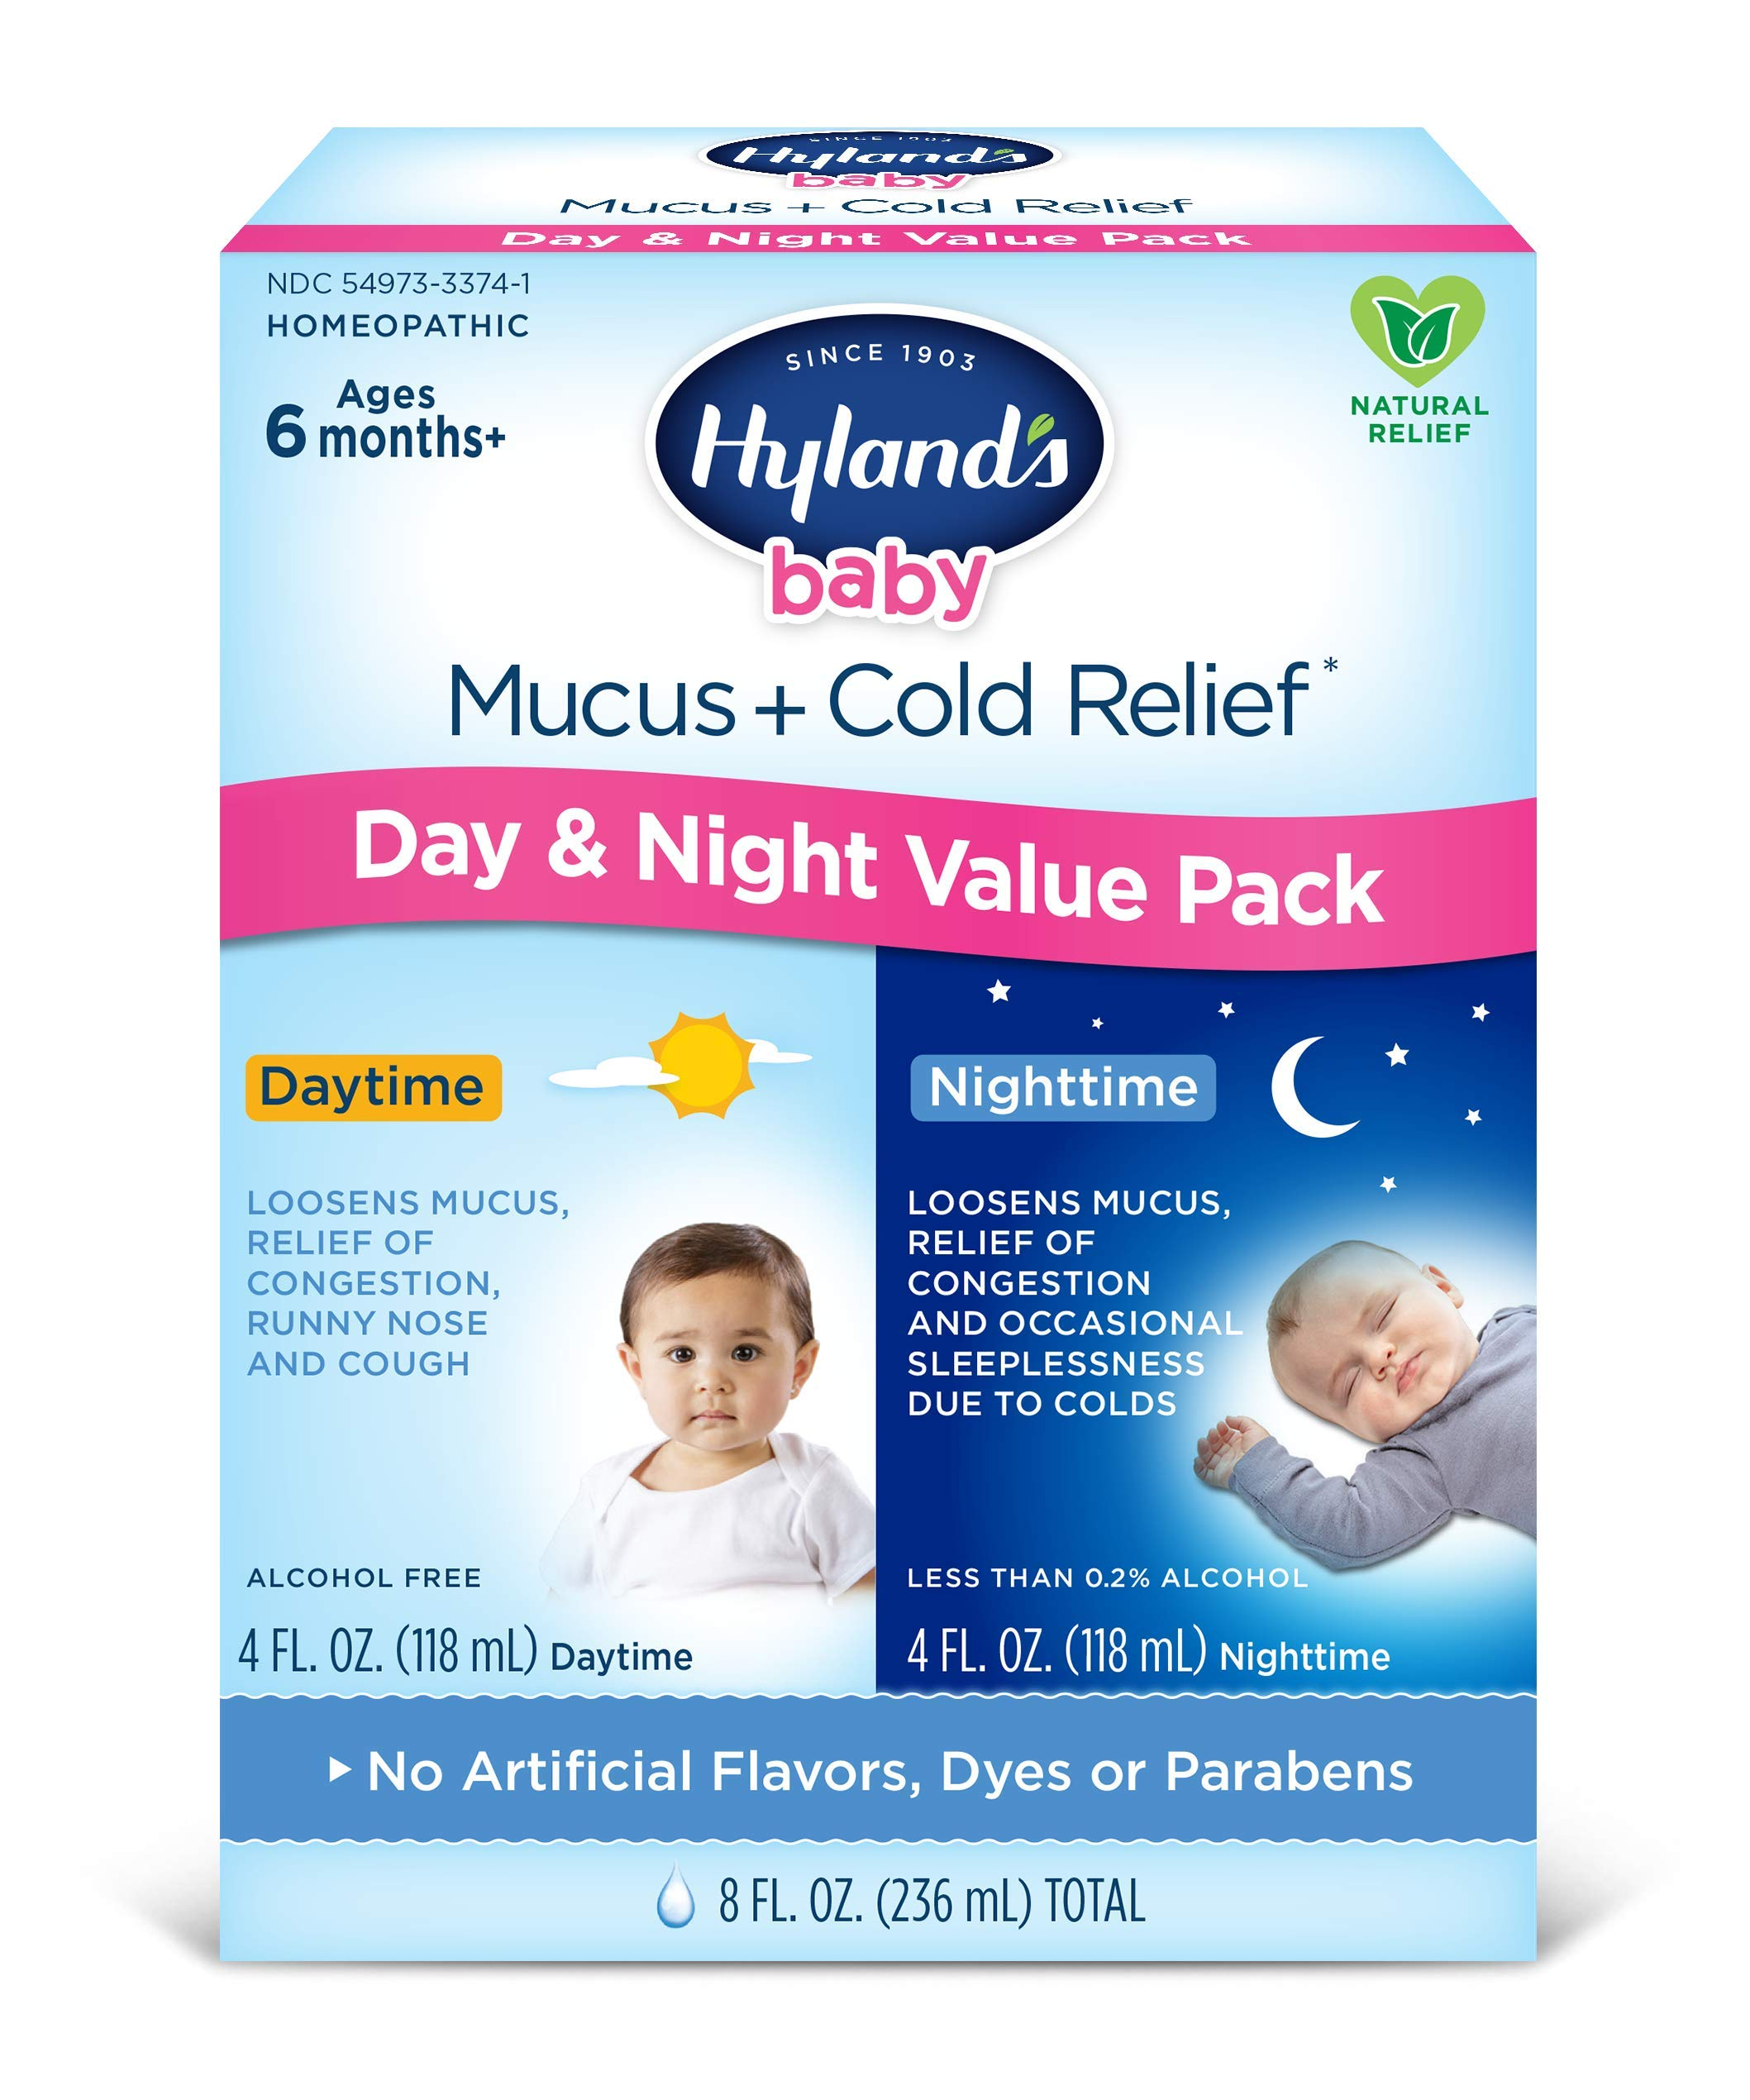 Baby Cold Medicine, Infant Cold and Cough Medicine, Decongestant, Hyland's Baby Mucus and Cold Relief, Day & Night Value Pack, 8 Fluid Ounce (Packaging May Vary) by Hyland's Homeopathic